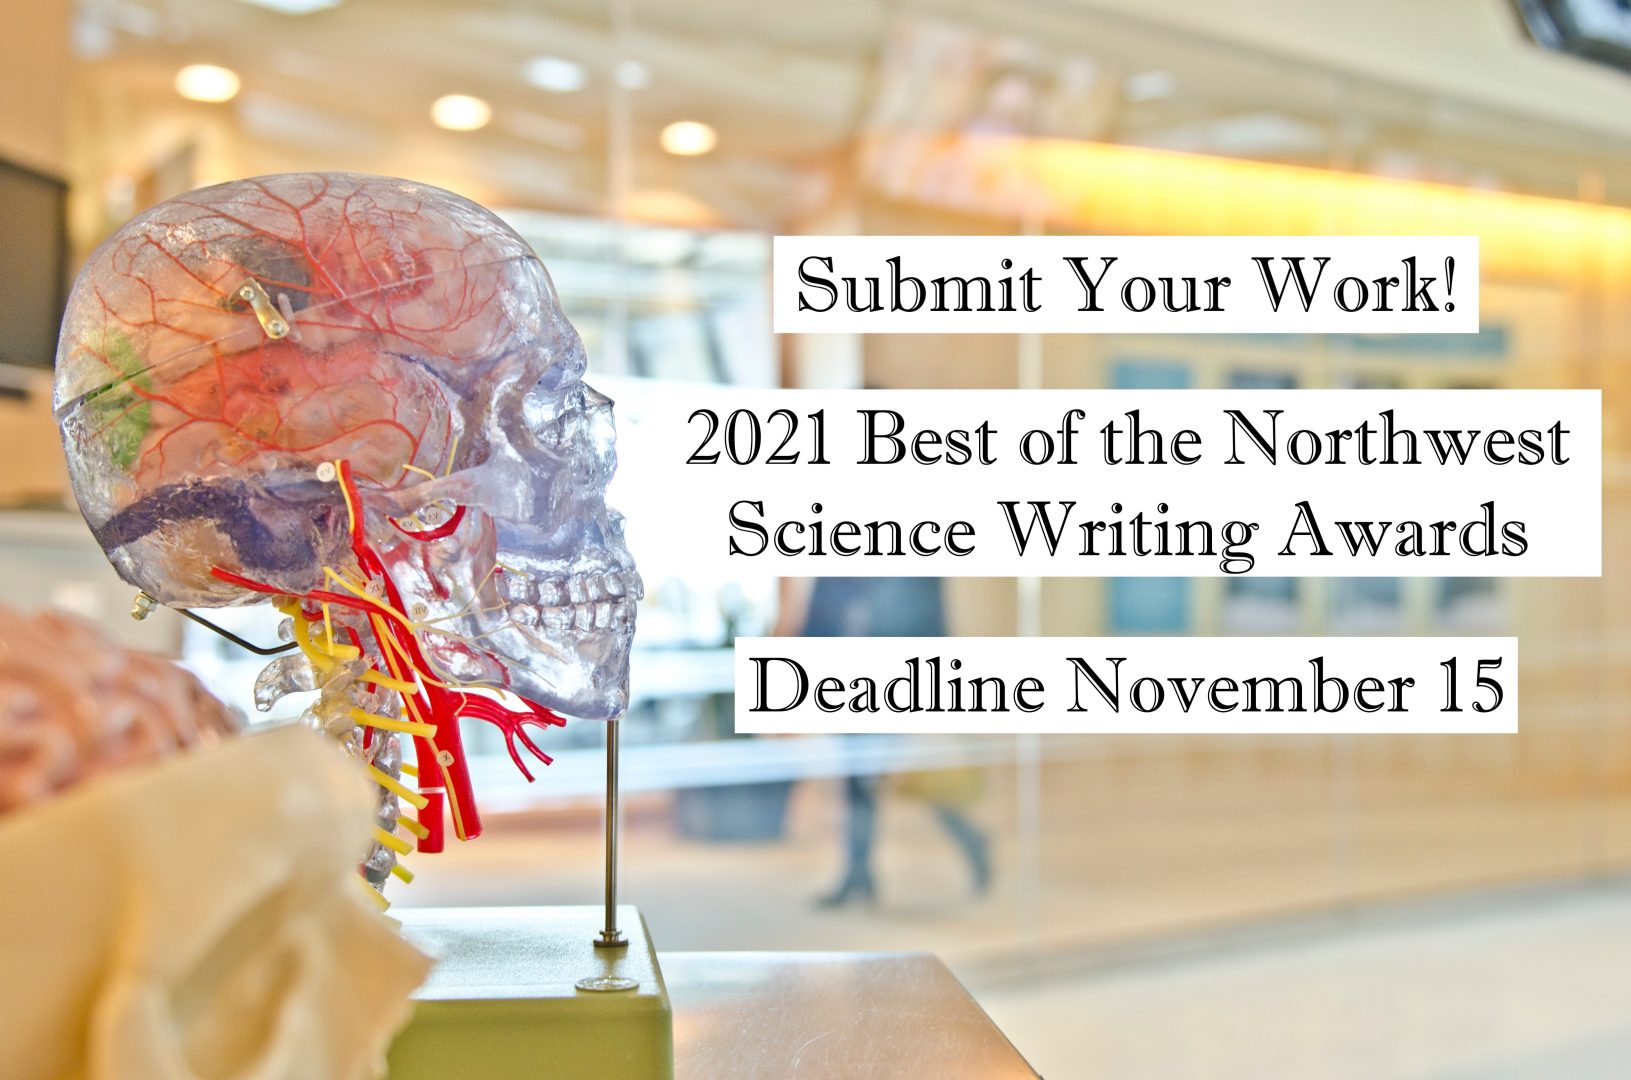 Submit Your Work! 2021 Best of the Northwest Science Writing Awards, Deadline November 15